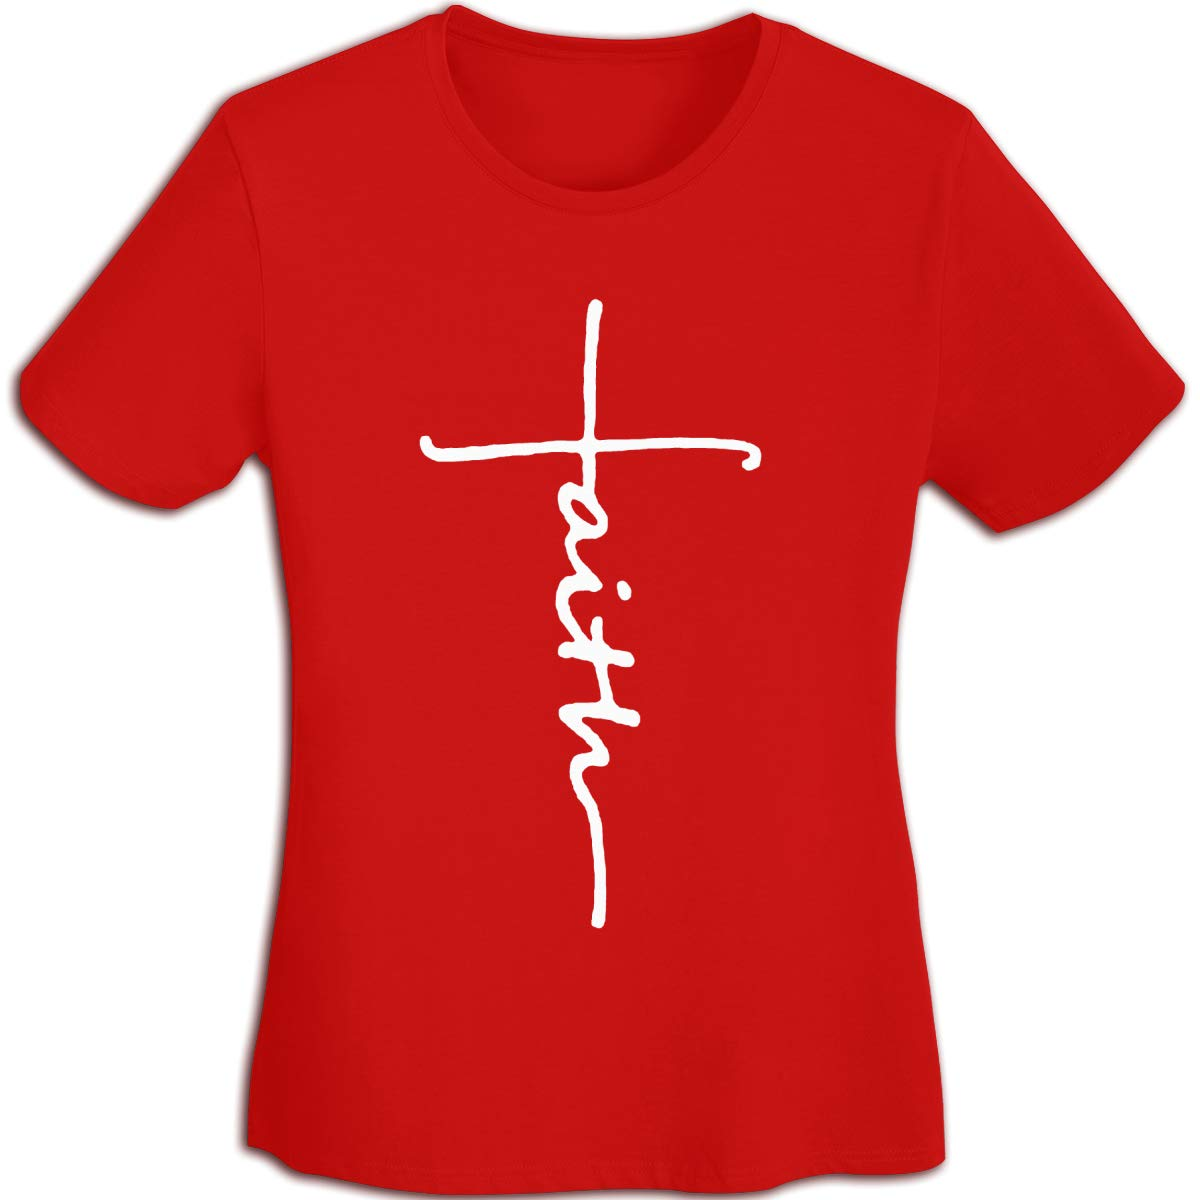 Women's T Shirt Cross Faith Shirts Jesus Tshirts Cotton Christian T-Shirt Short-Sleeve Tshirt for Women Youth Girls Red M by BKashy